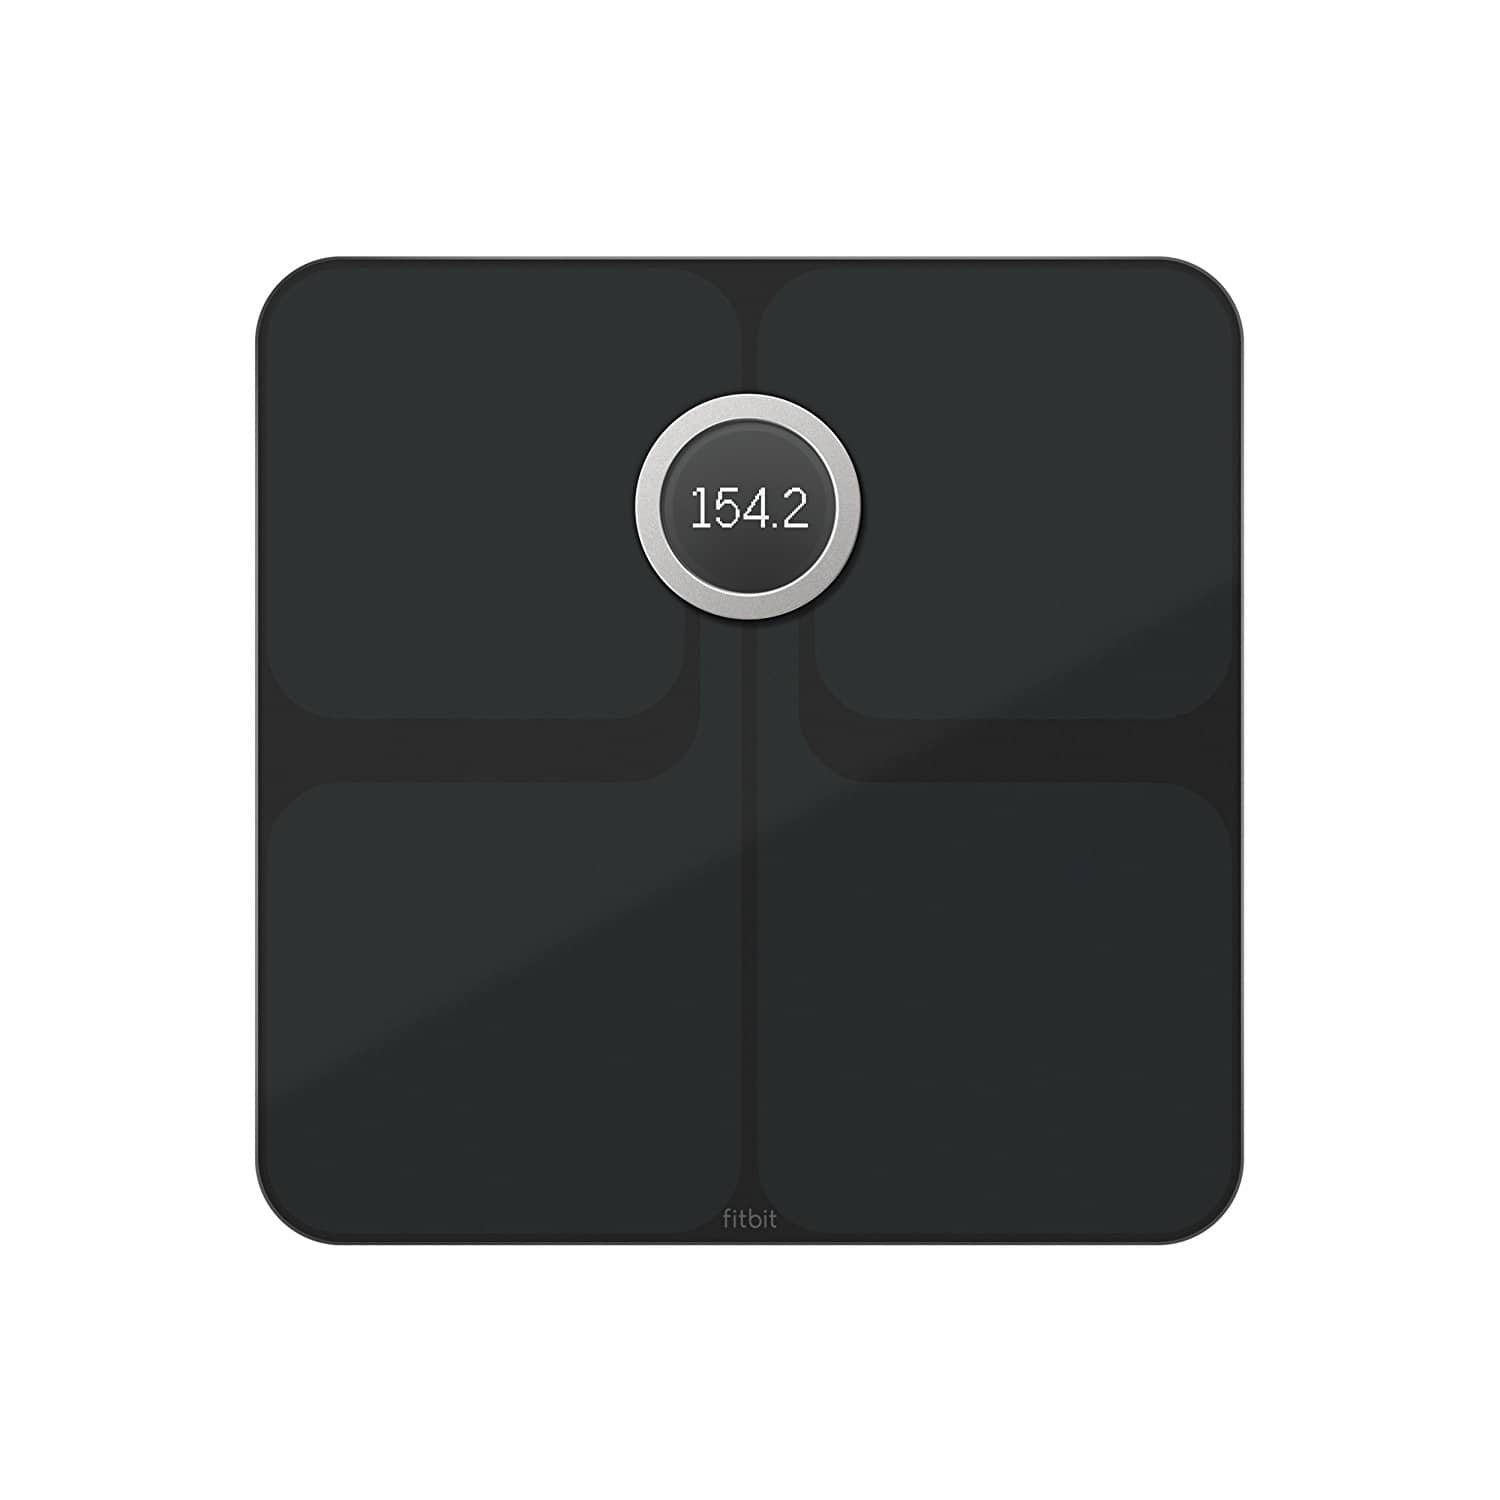 Fitbit Aria 2 Wifi + Bluetooth Smart Scale, White or Black $111.99